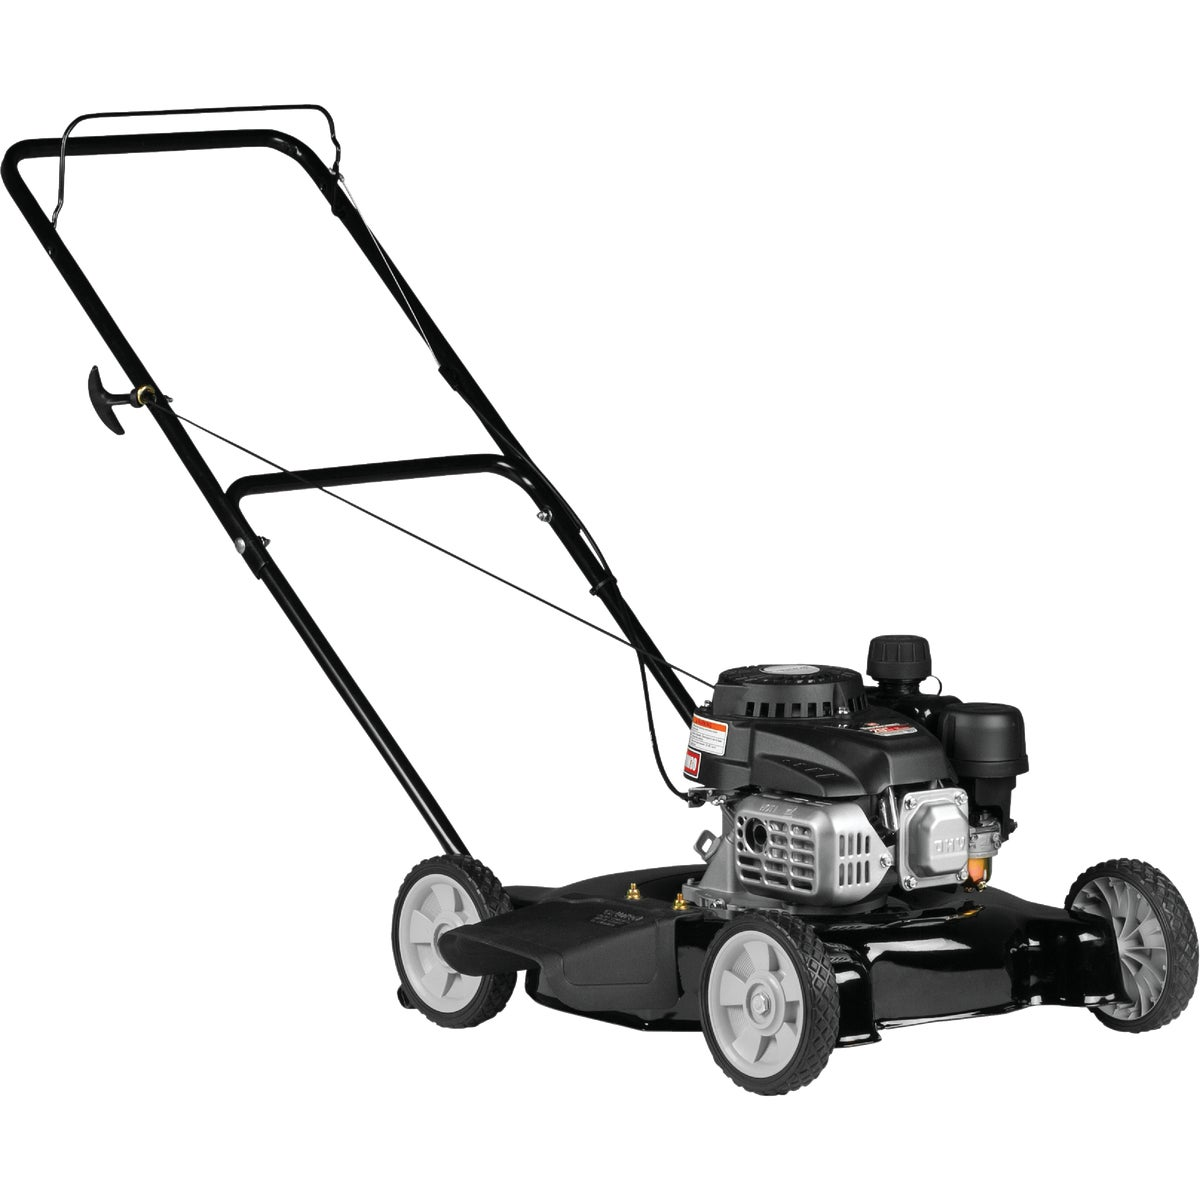 "20"" SIDE DISCHARGE MOWER - 11A-02SB700 by M T D Products"